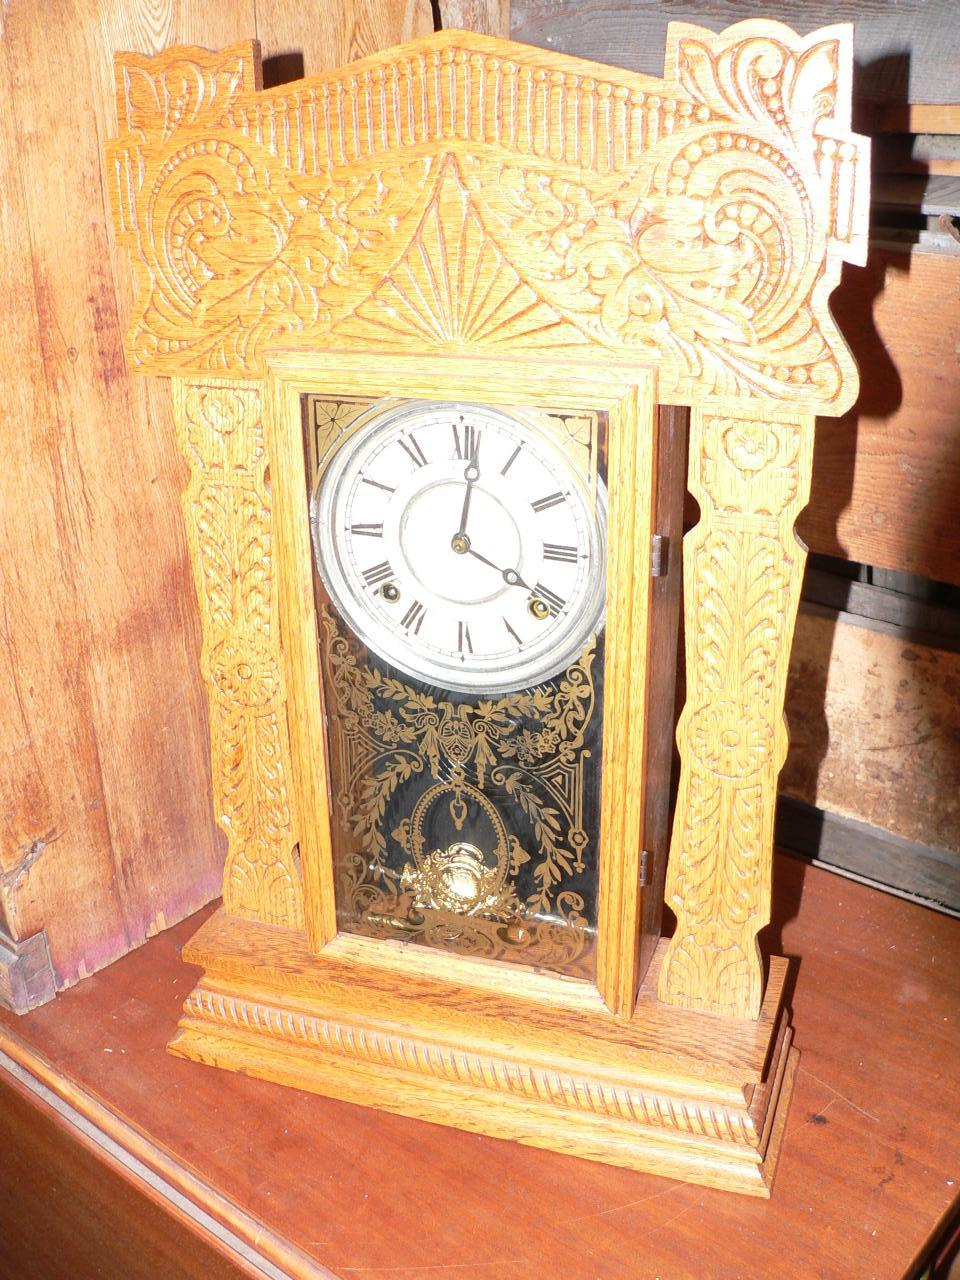 Horloge antique pain d'épice # 3052